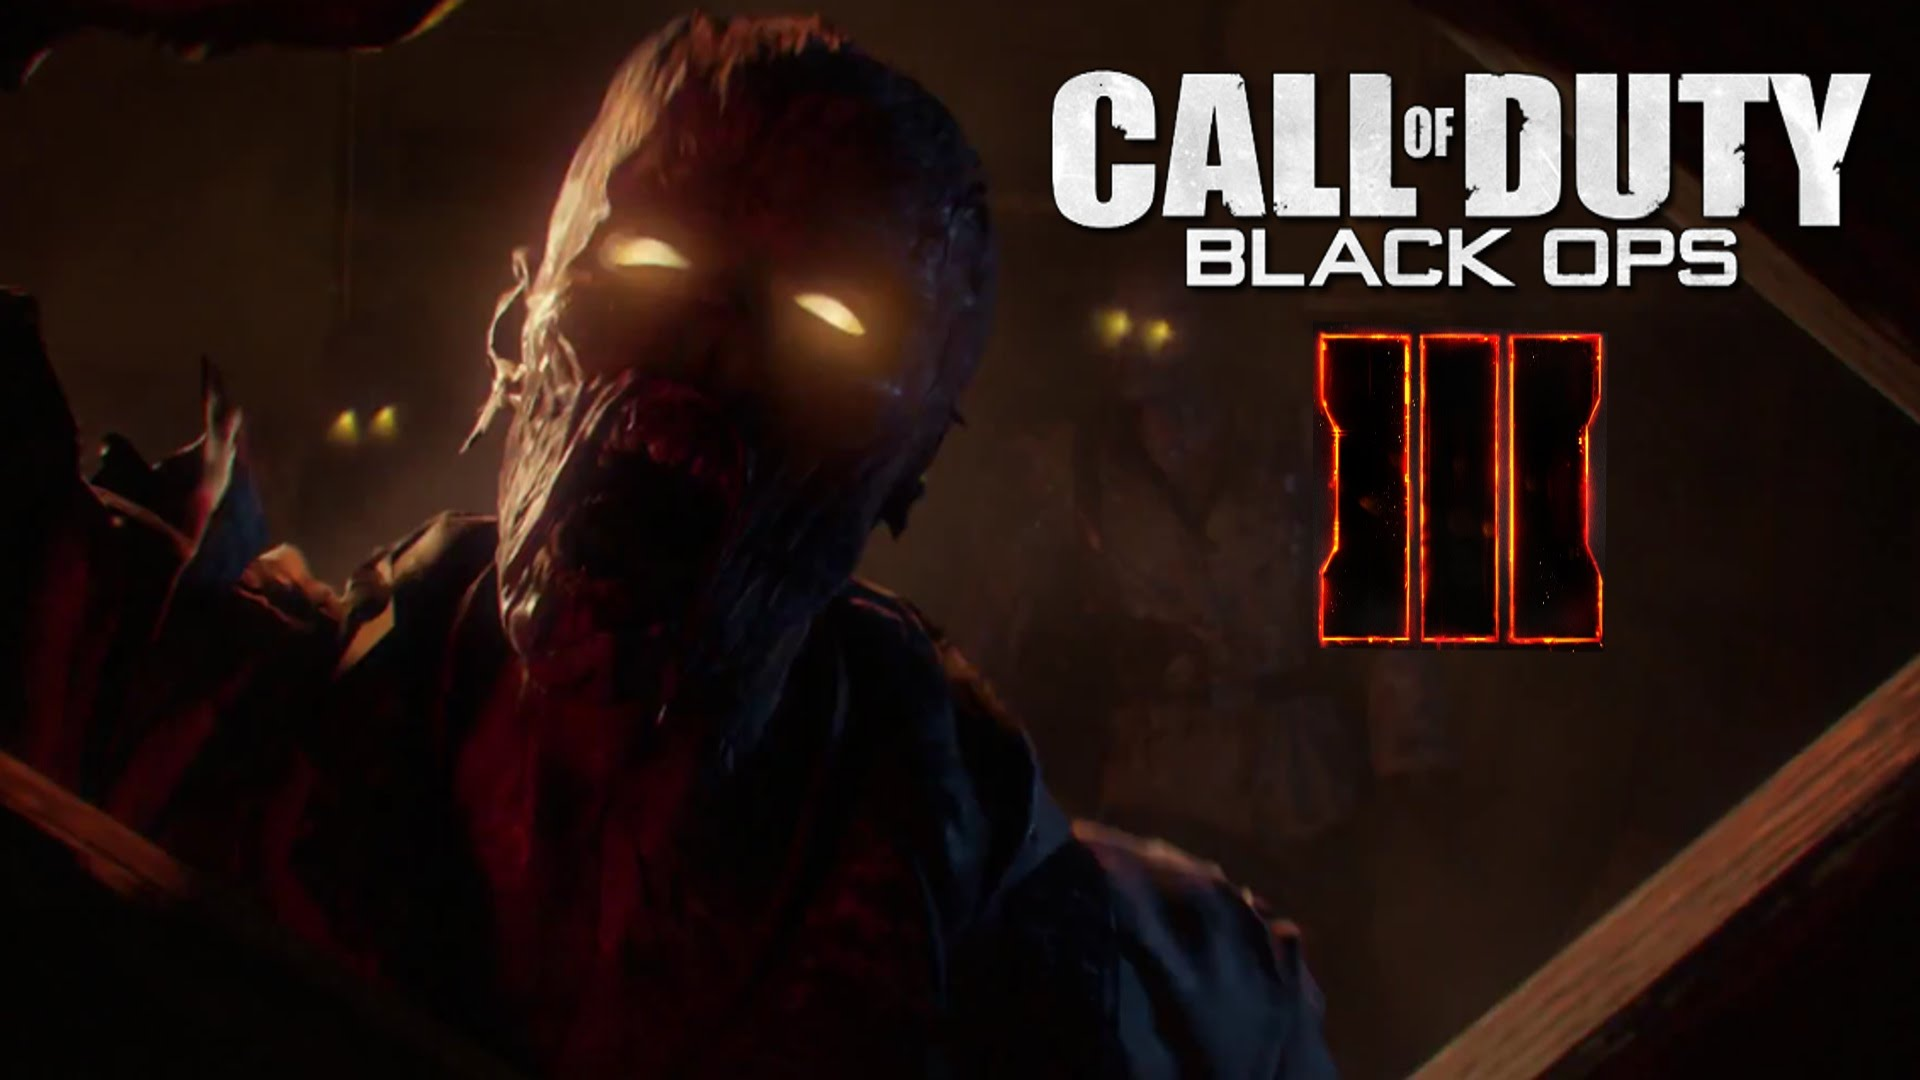 Call Of Duty Black Ops 3 Zombie Wallpaper Image Armies Of